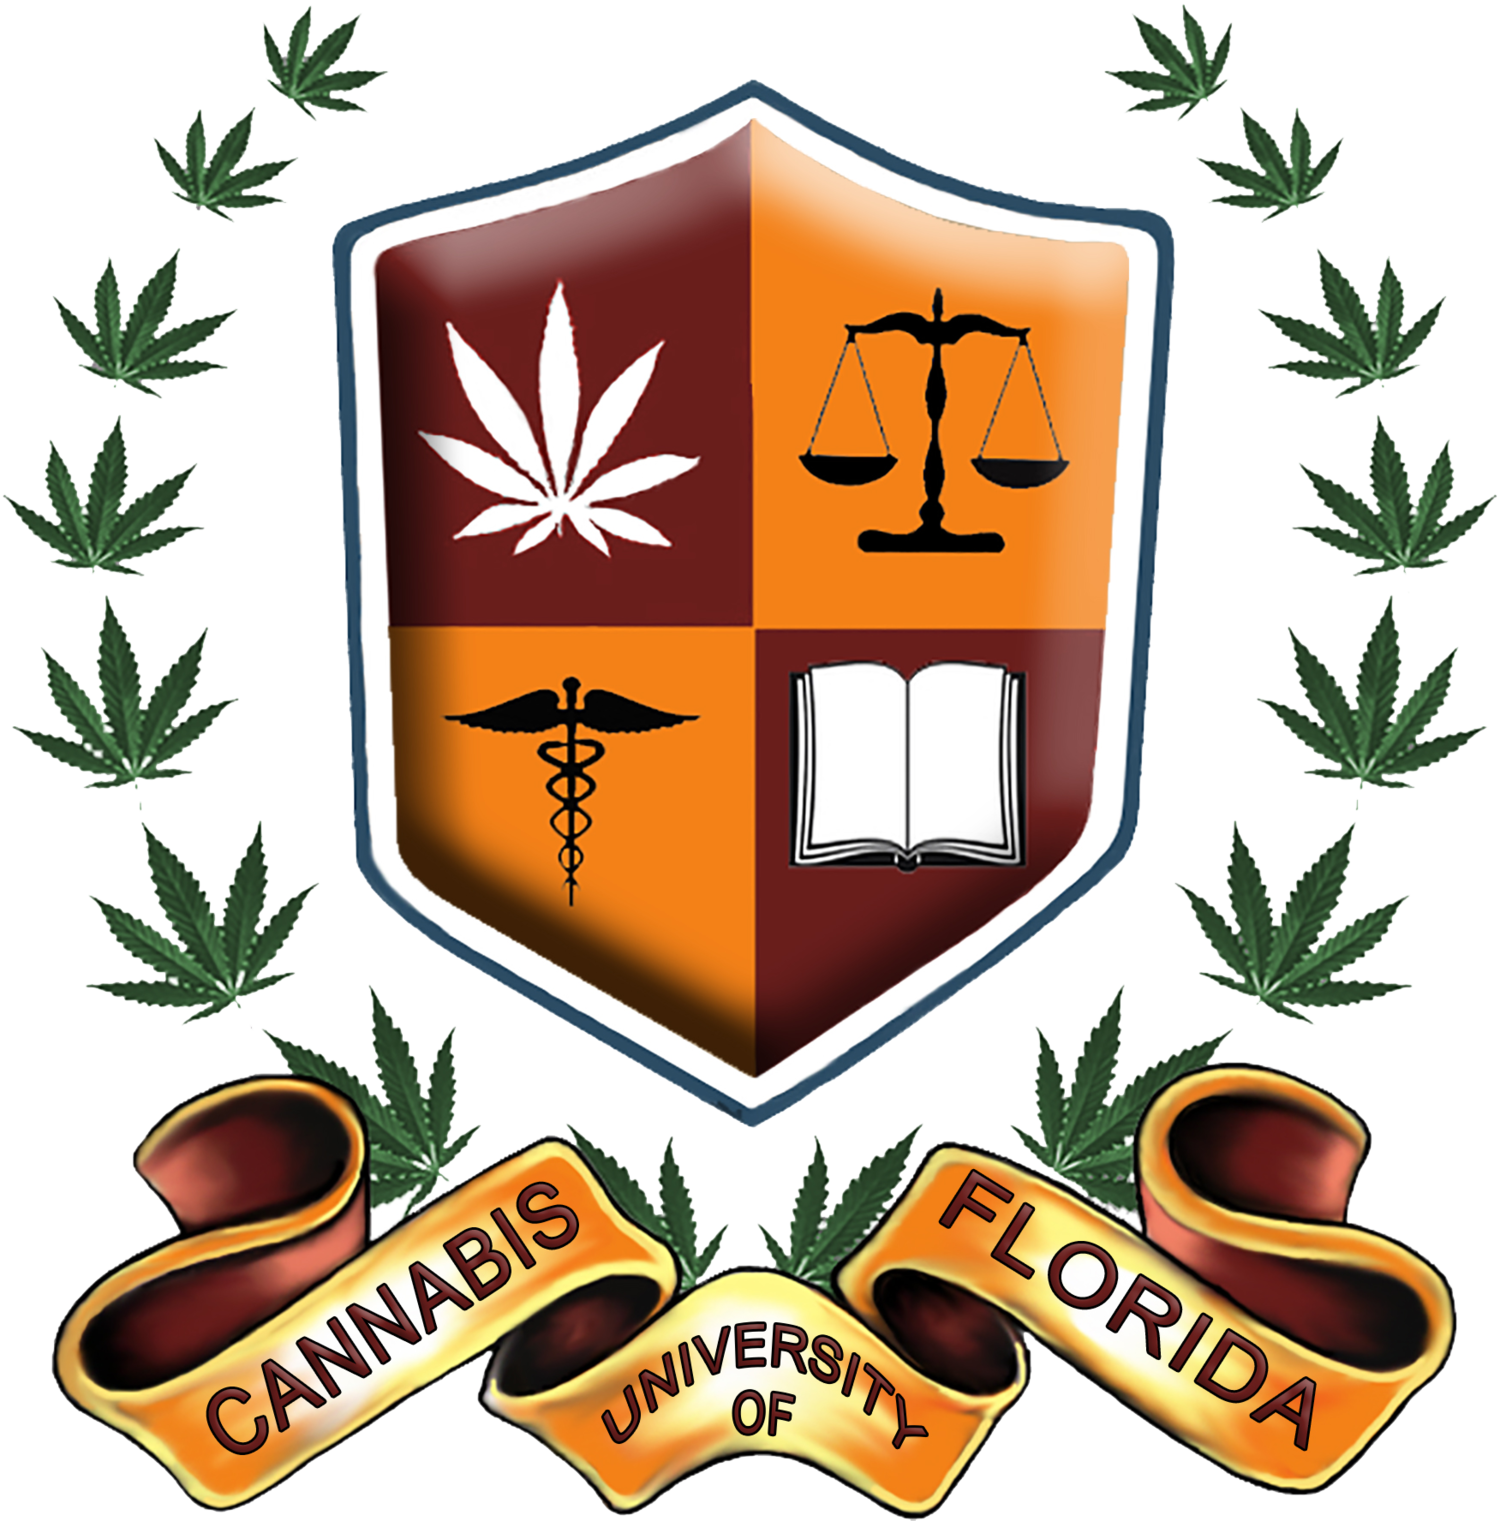 Cannabis University of Florida